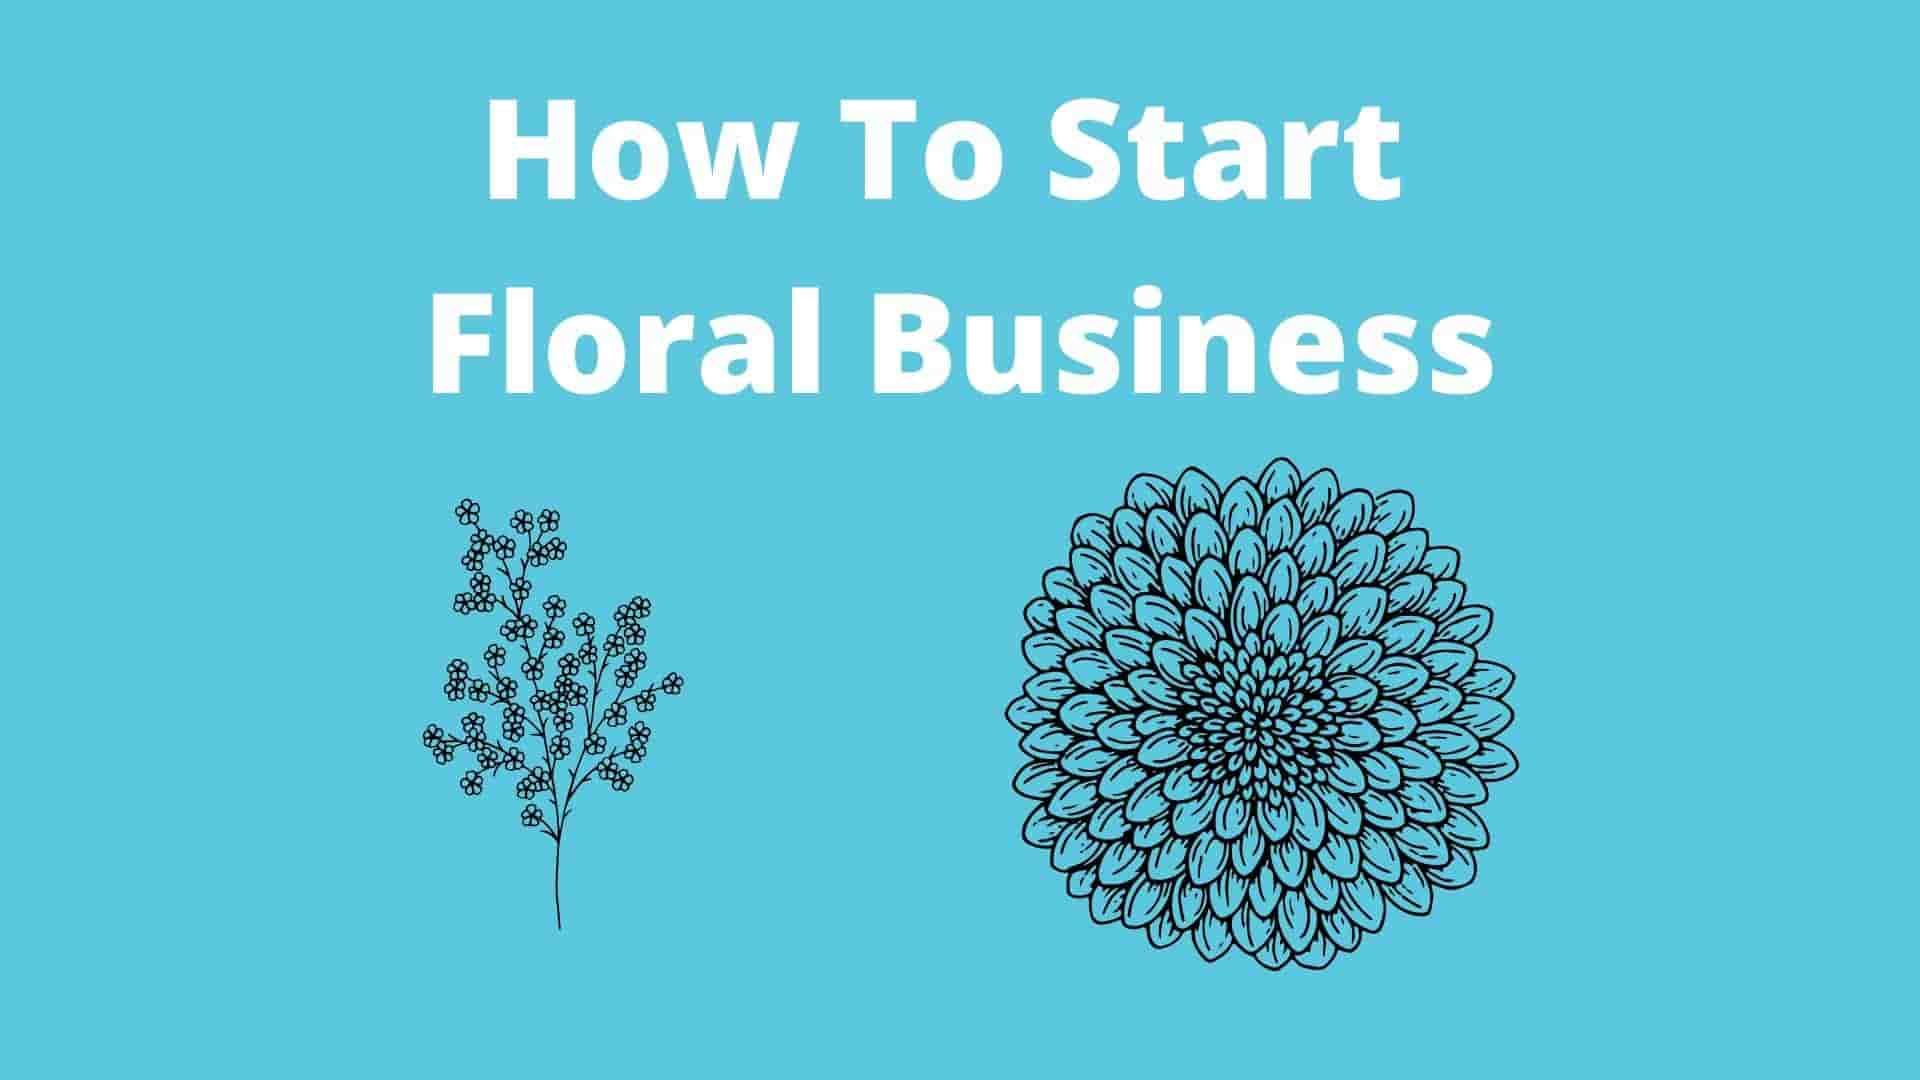 How To Start Floral Business